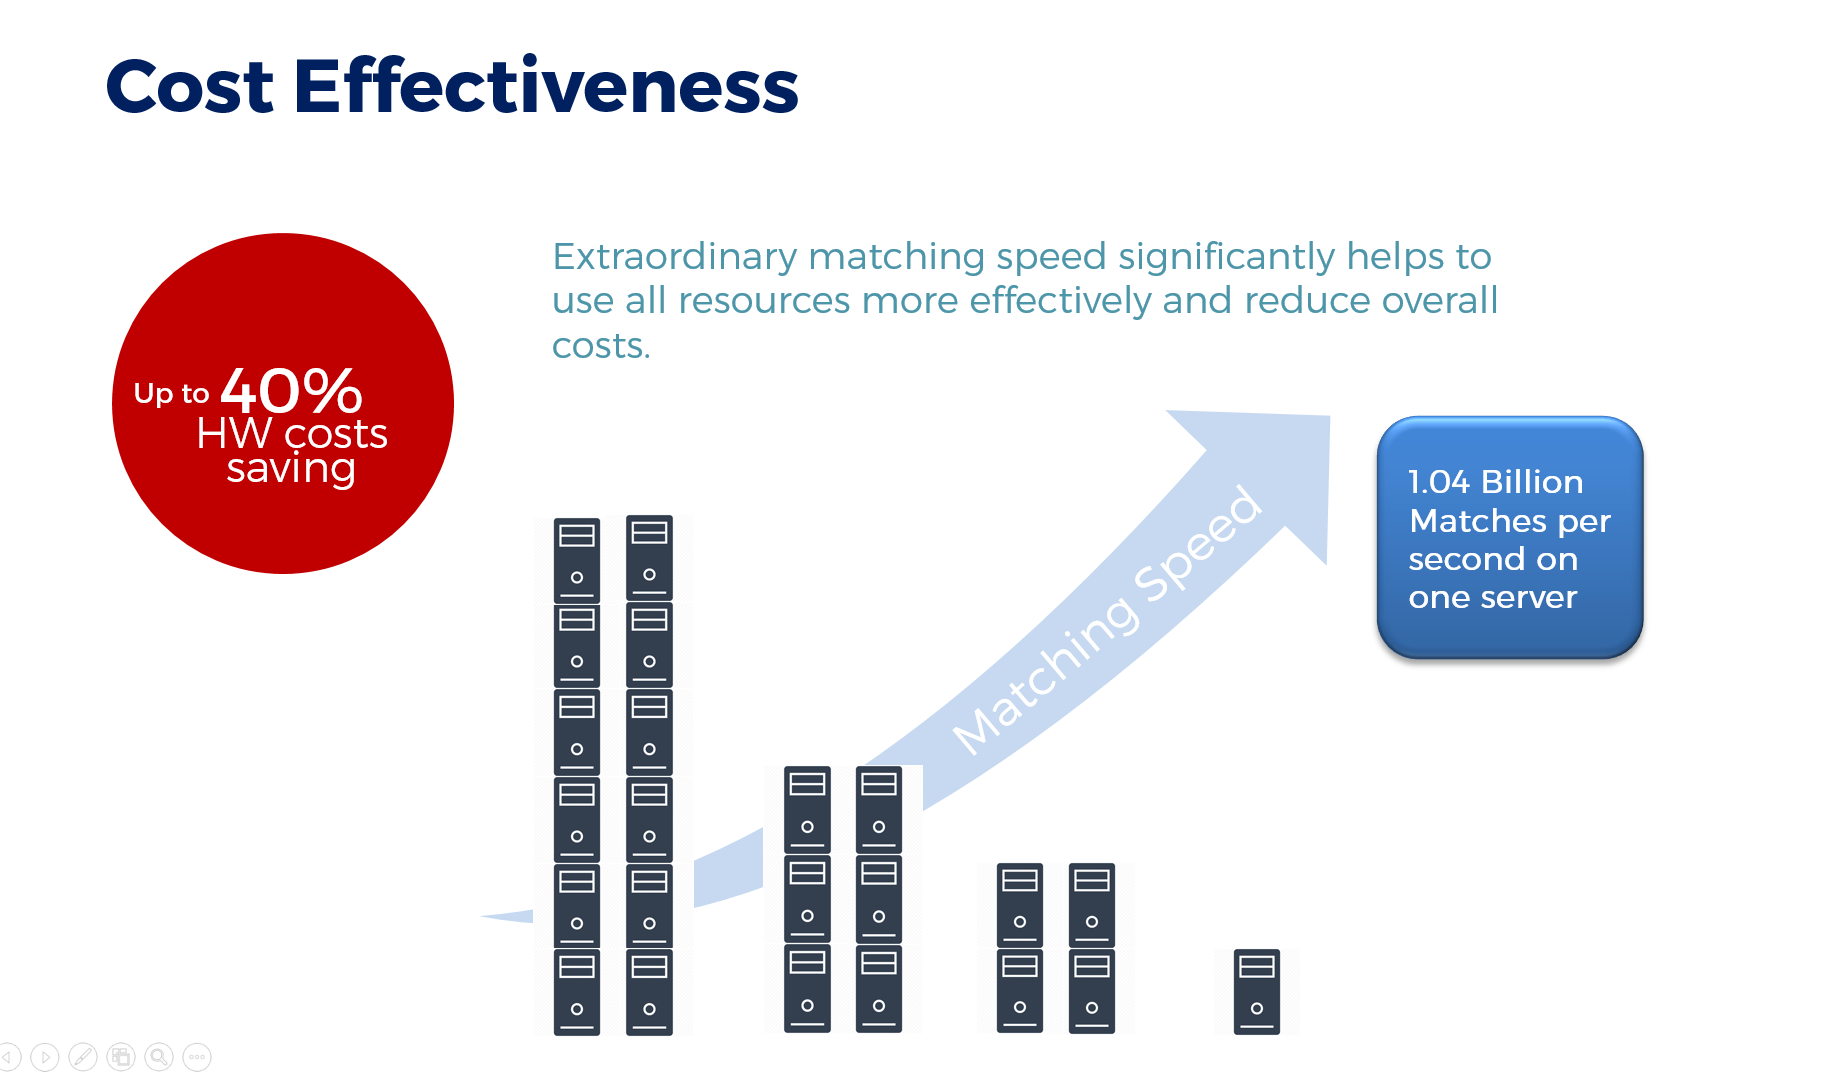 AFIS cost effectiveness